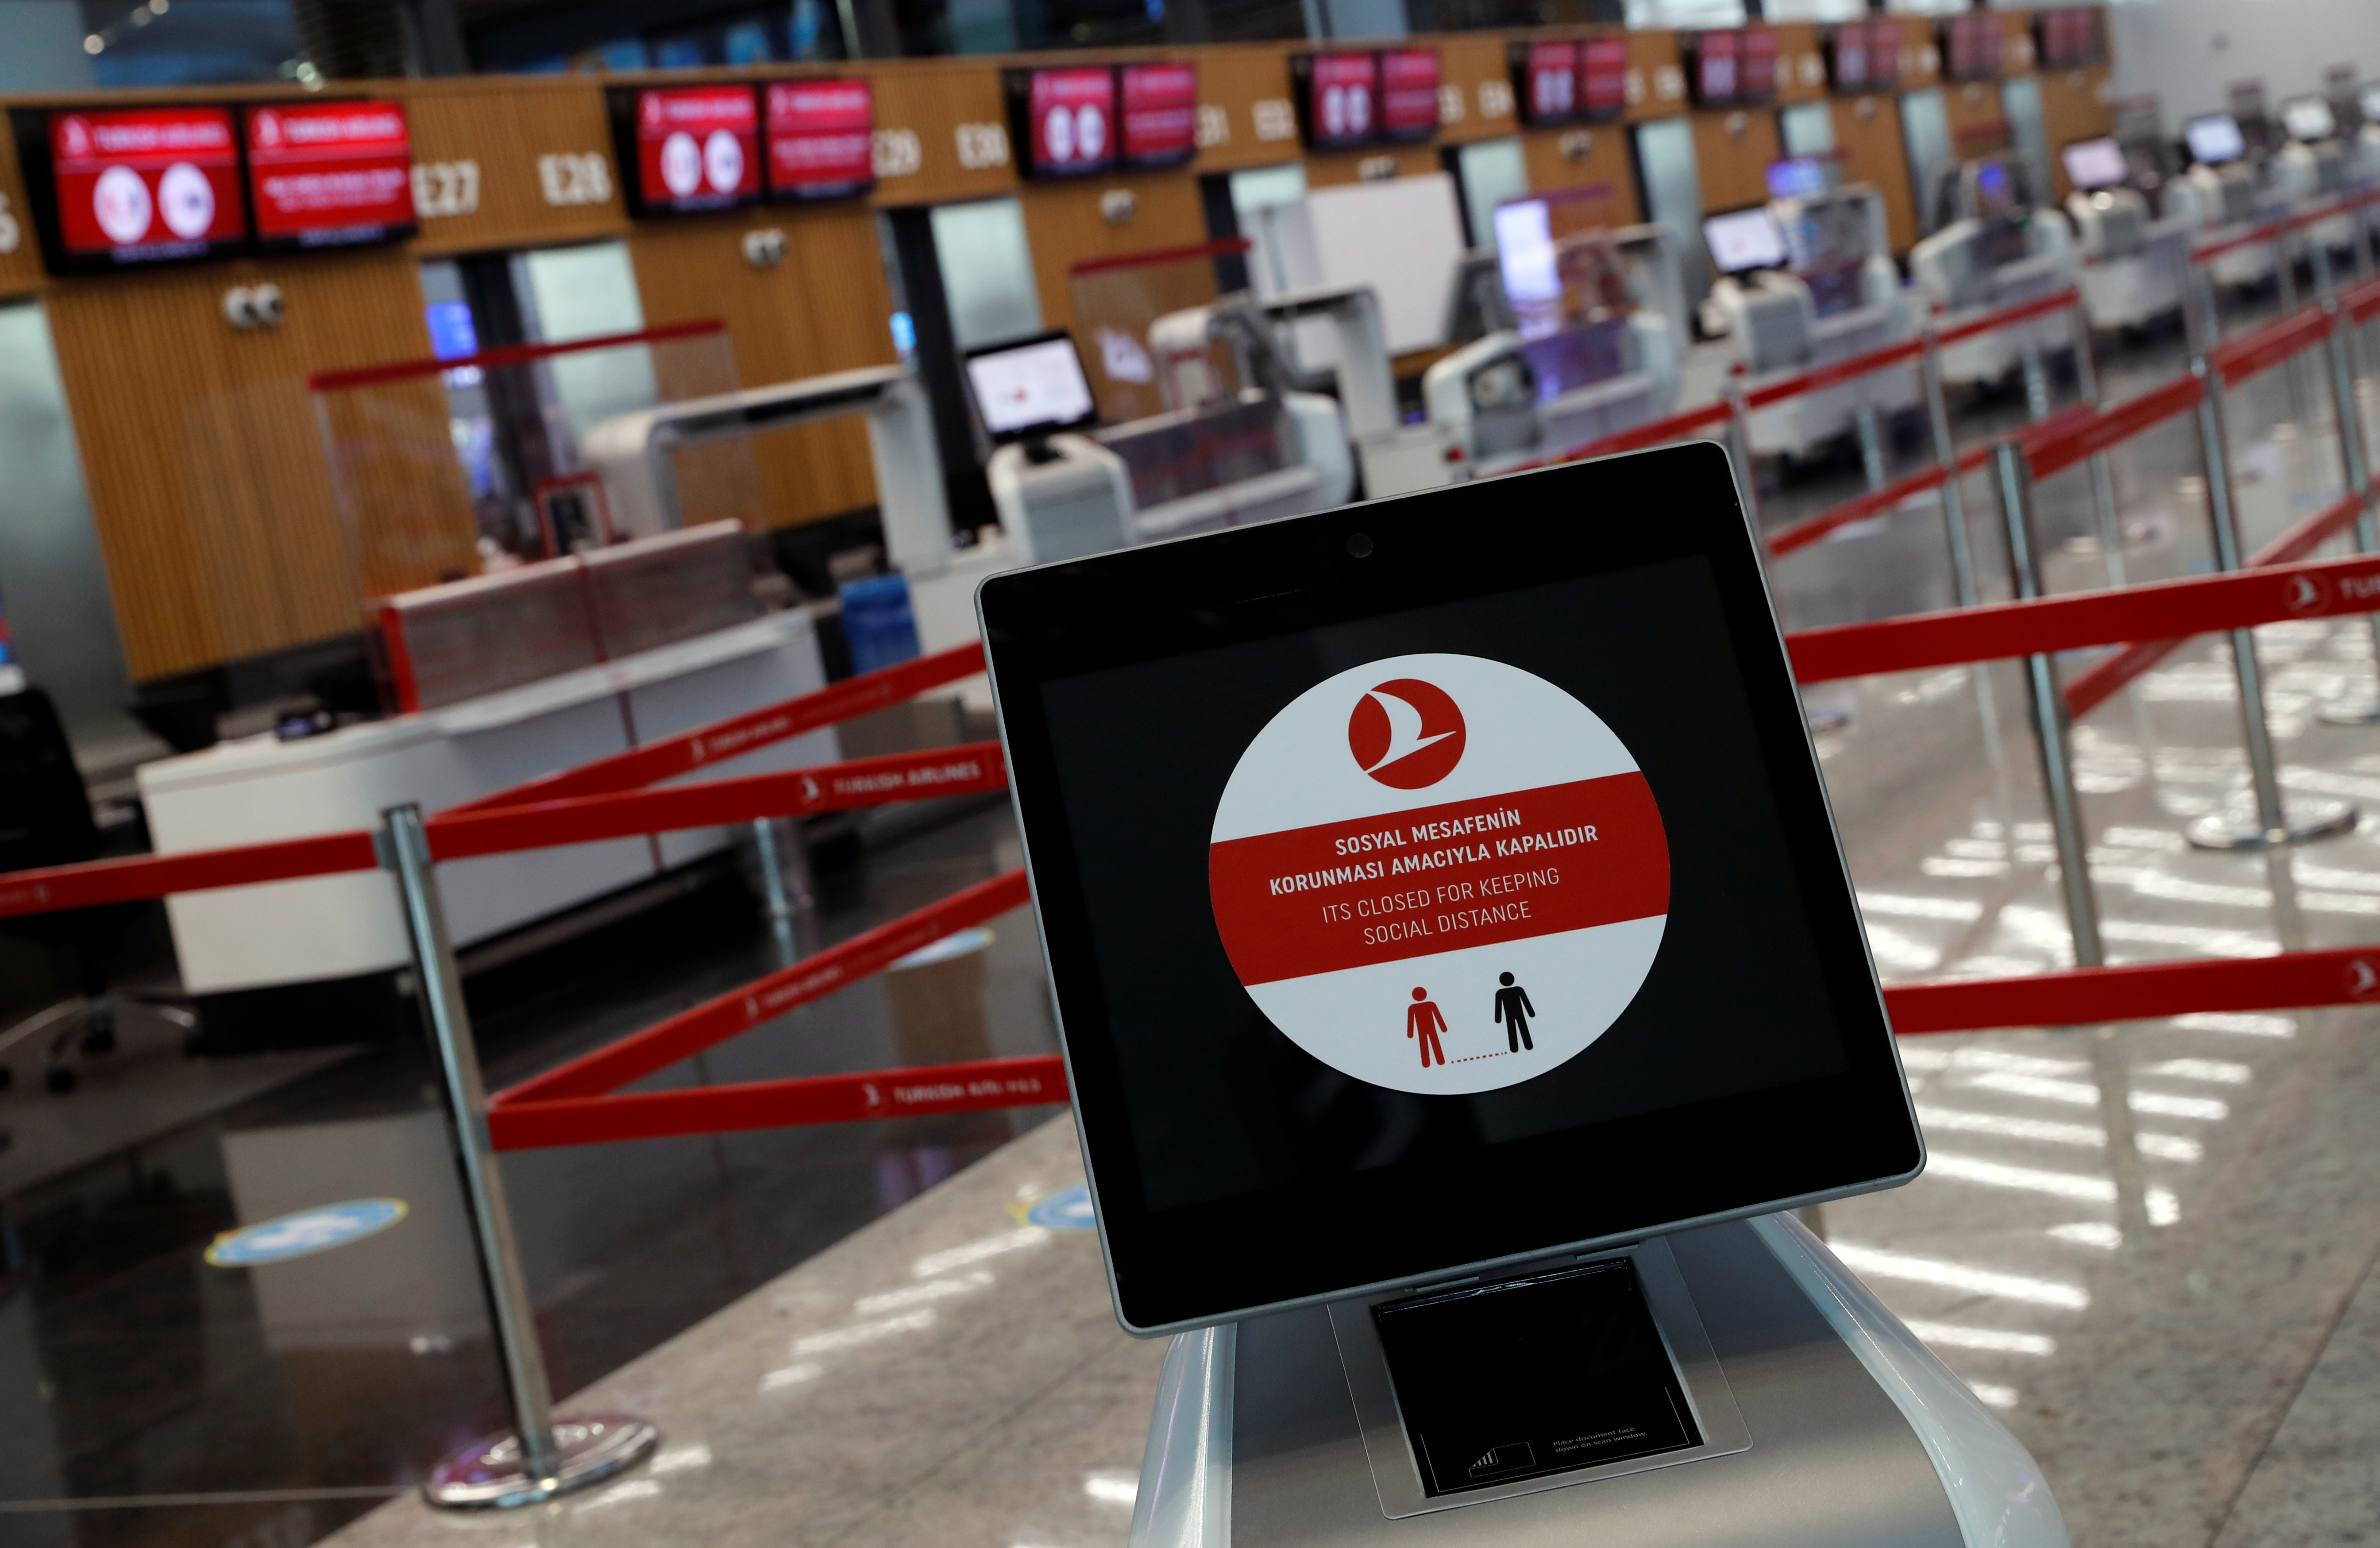 A social distancing sign is seen before the Turkish Airlines check-in counters at the international departure terminal of the Istanbul Airport amid the coronavirus disease (COVID-19) outbreak, in Istanbul, Turkey June 19, 2020. REUTERS/Murad Sezer